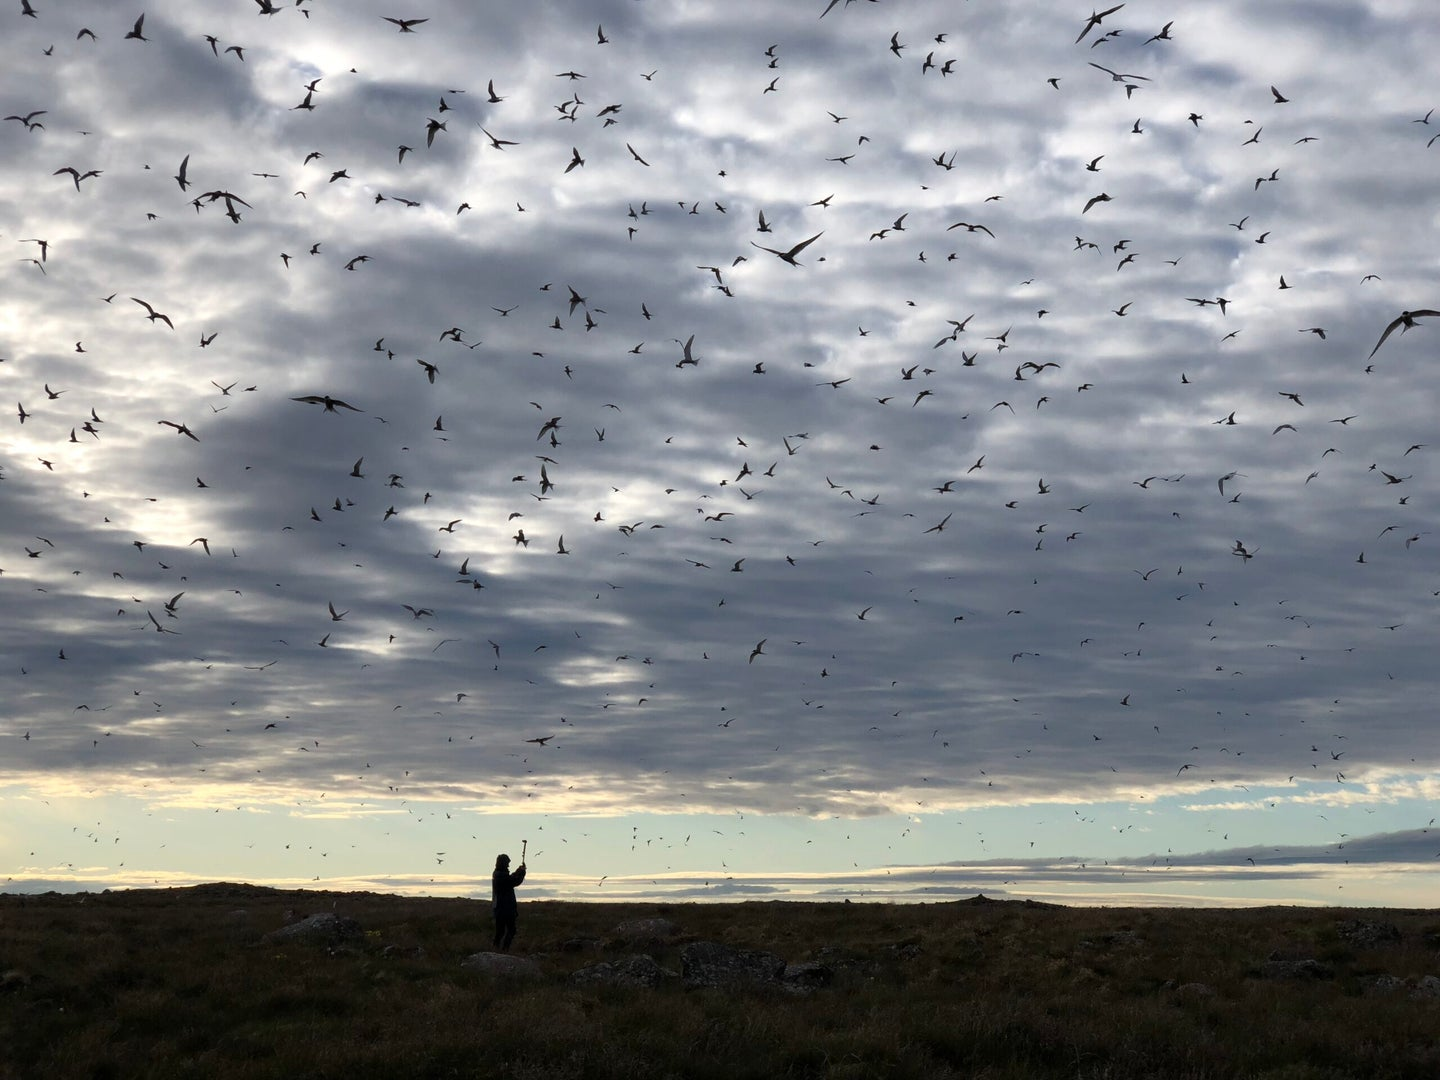 arctic terns flying against clouds with person silhouetted against background